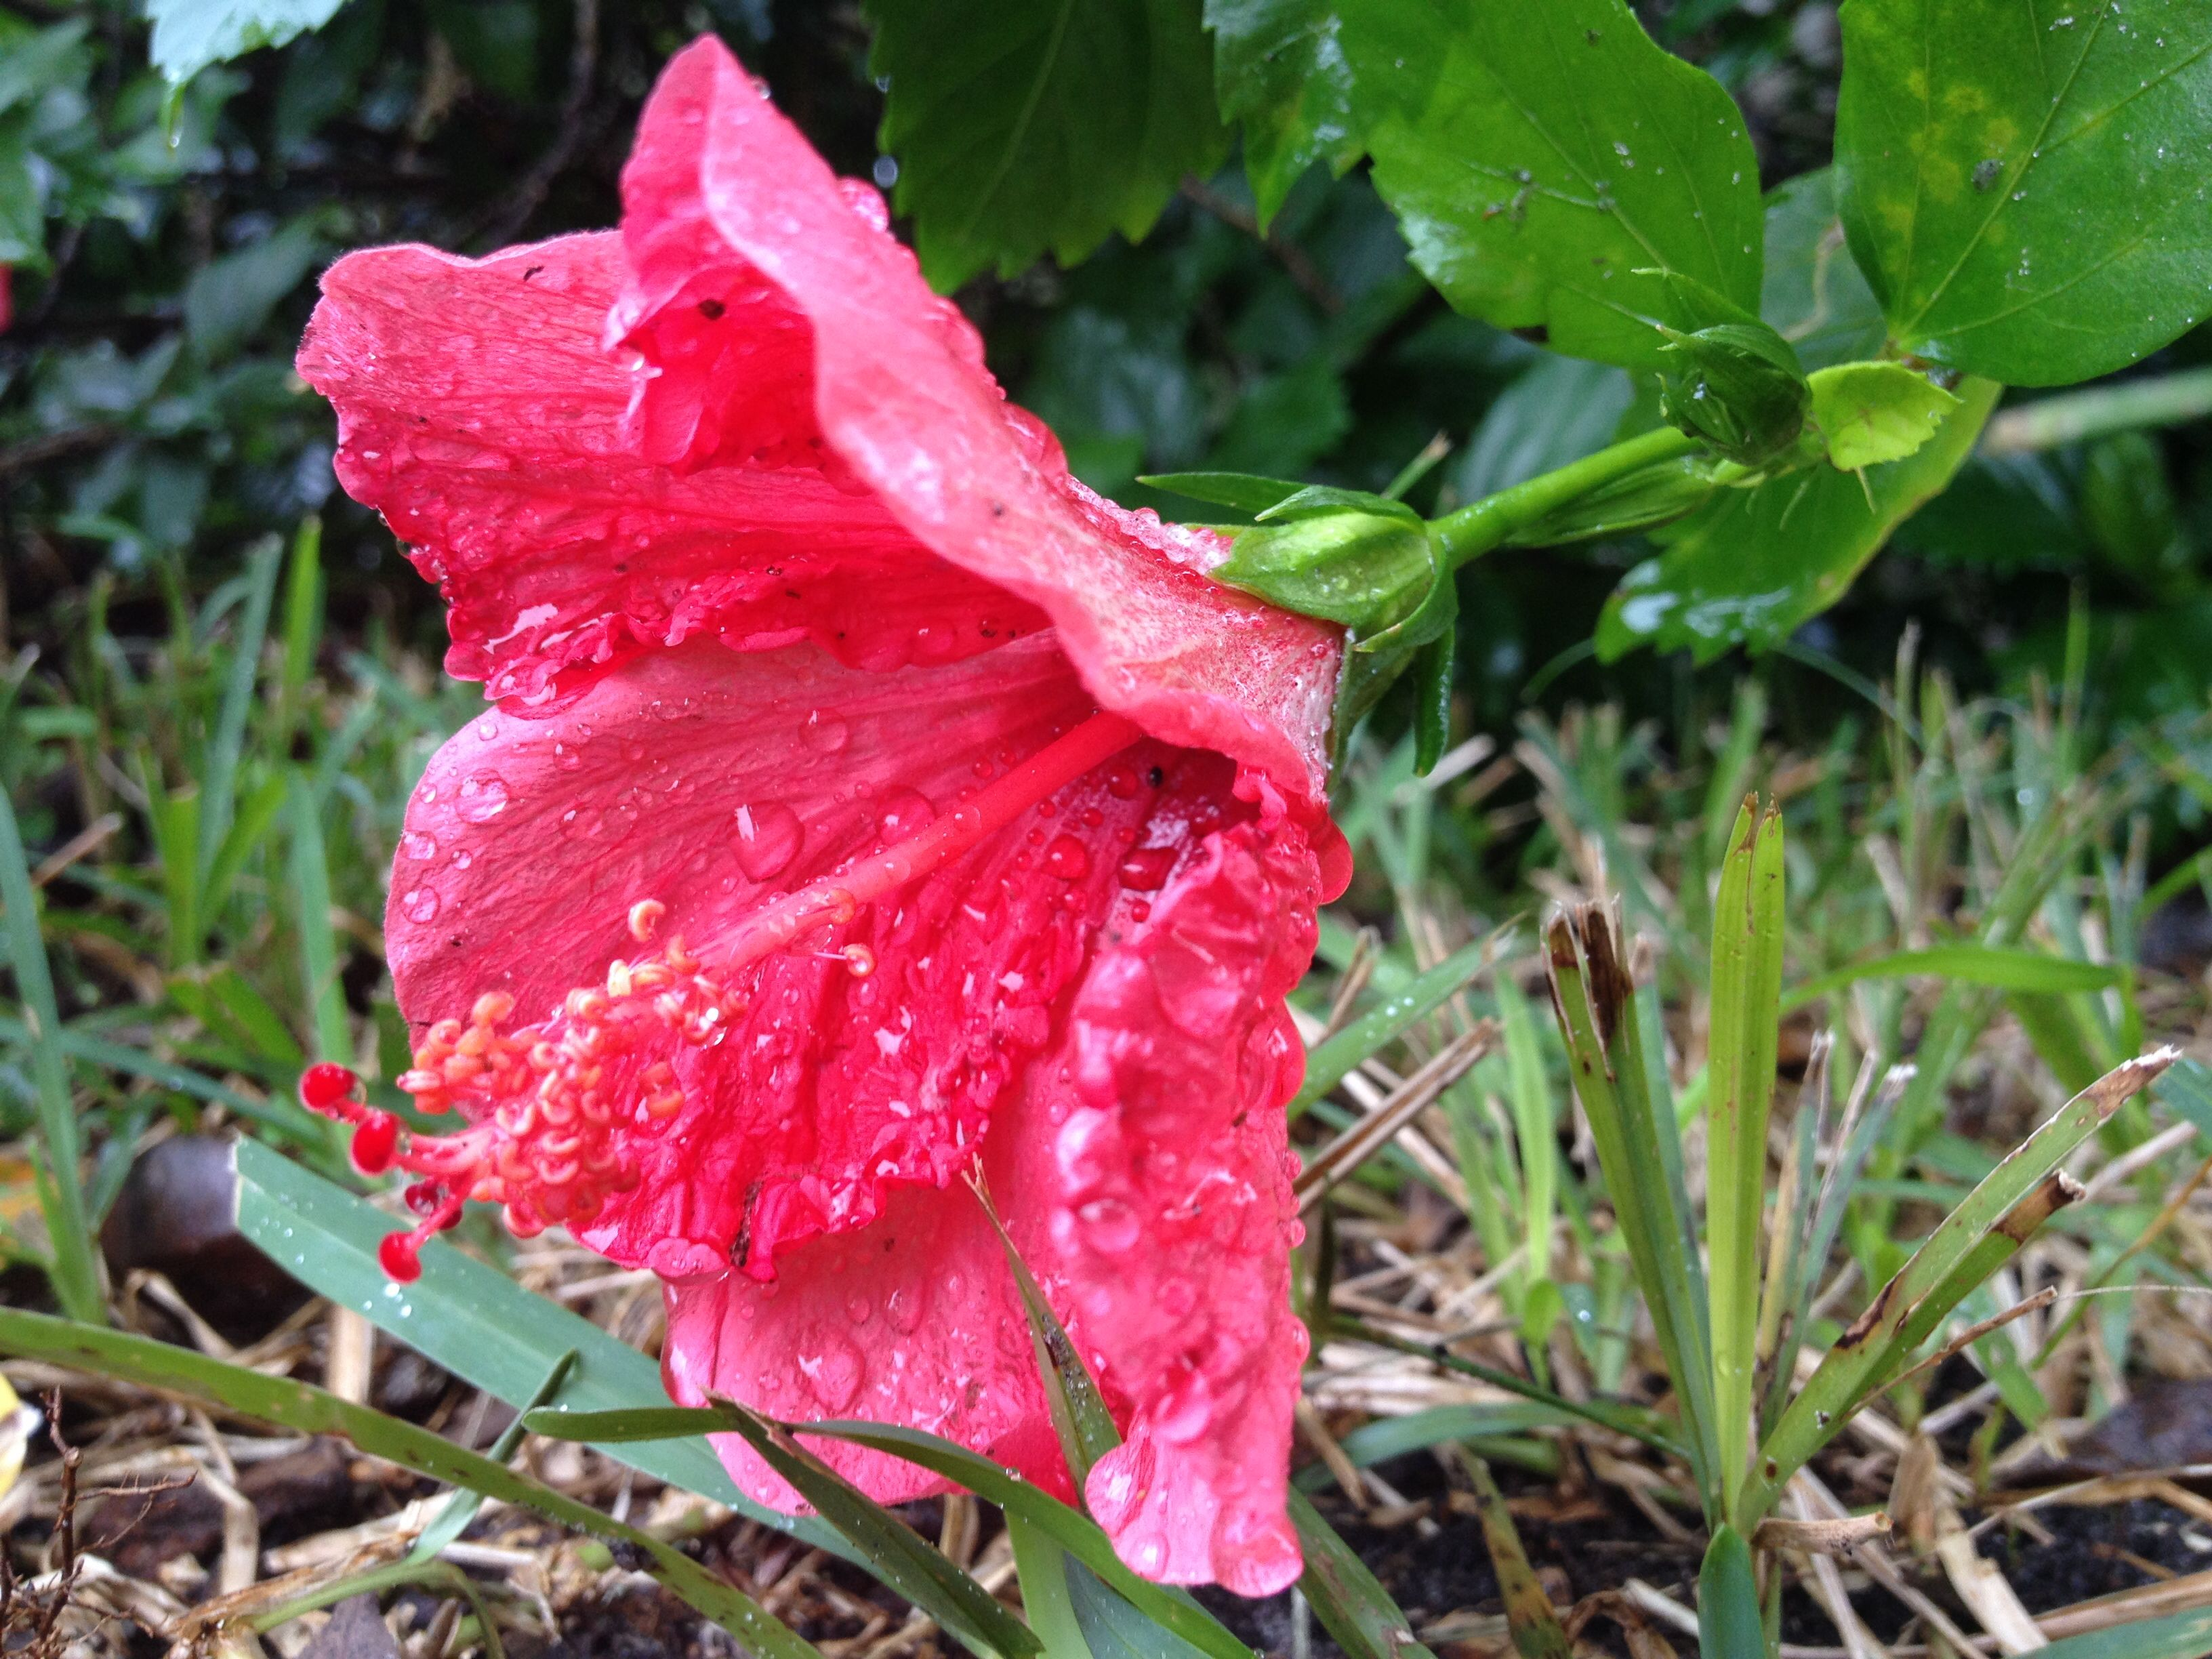 Pink Hibiscus flower in the rain.